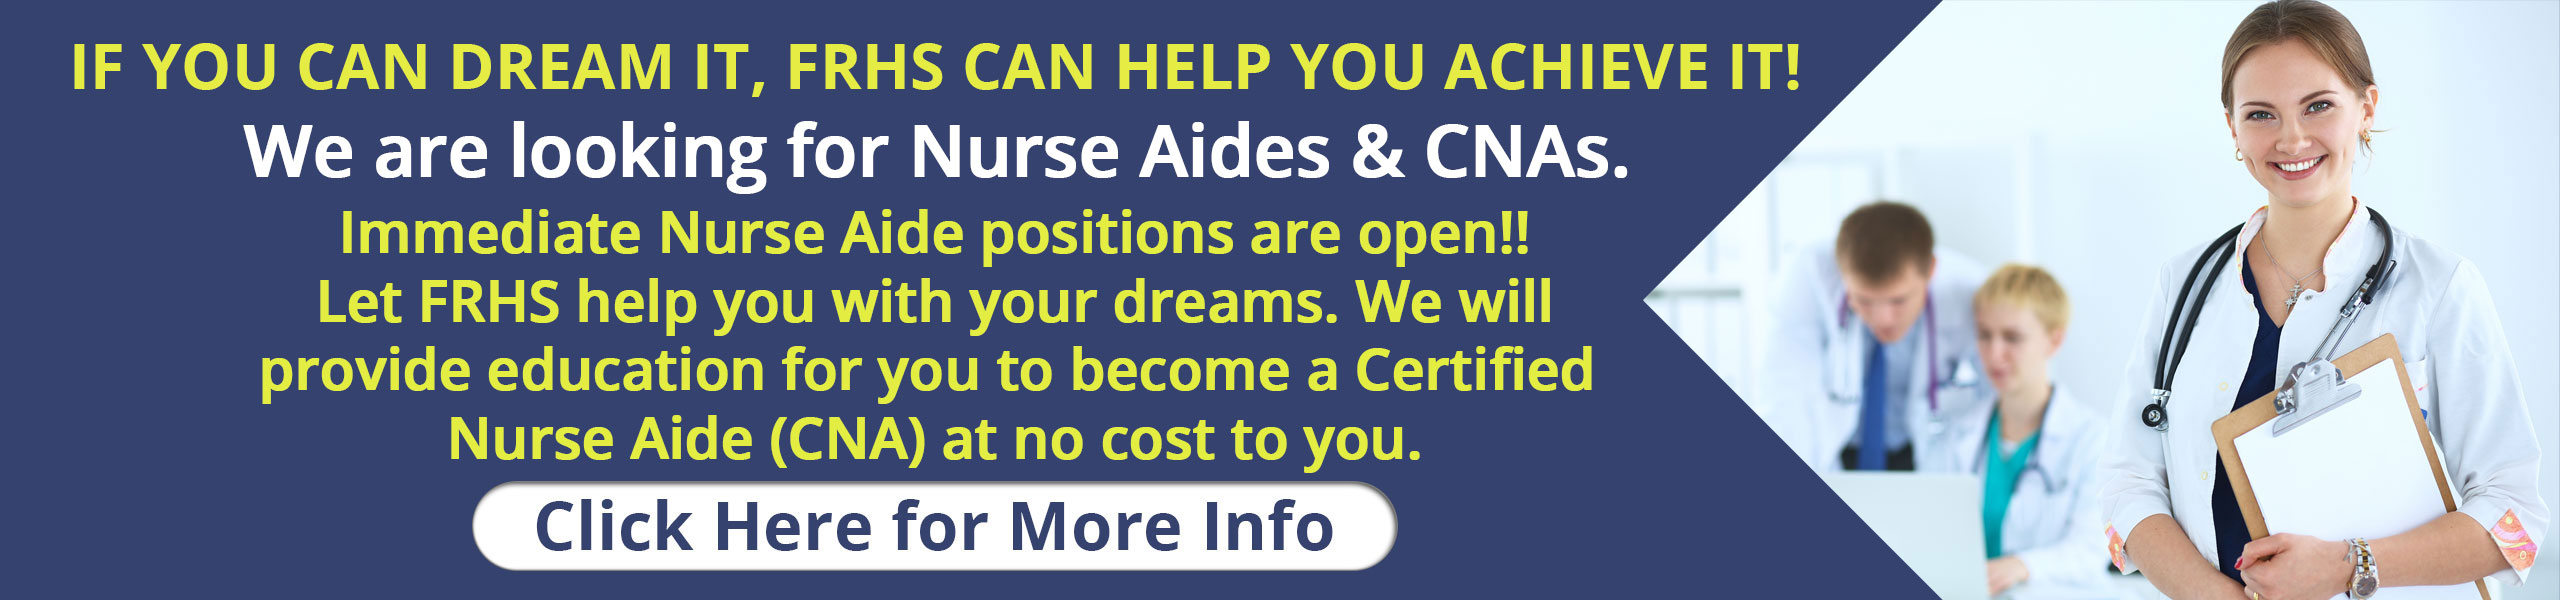 If you can dream, FRHS can help you achieve it!